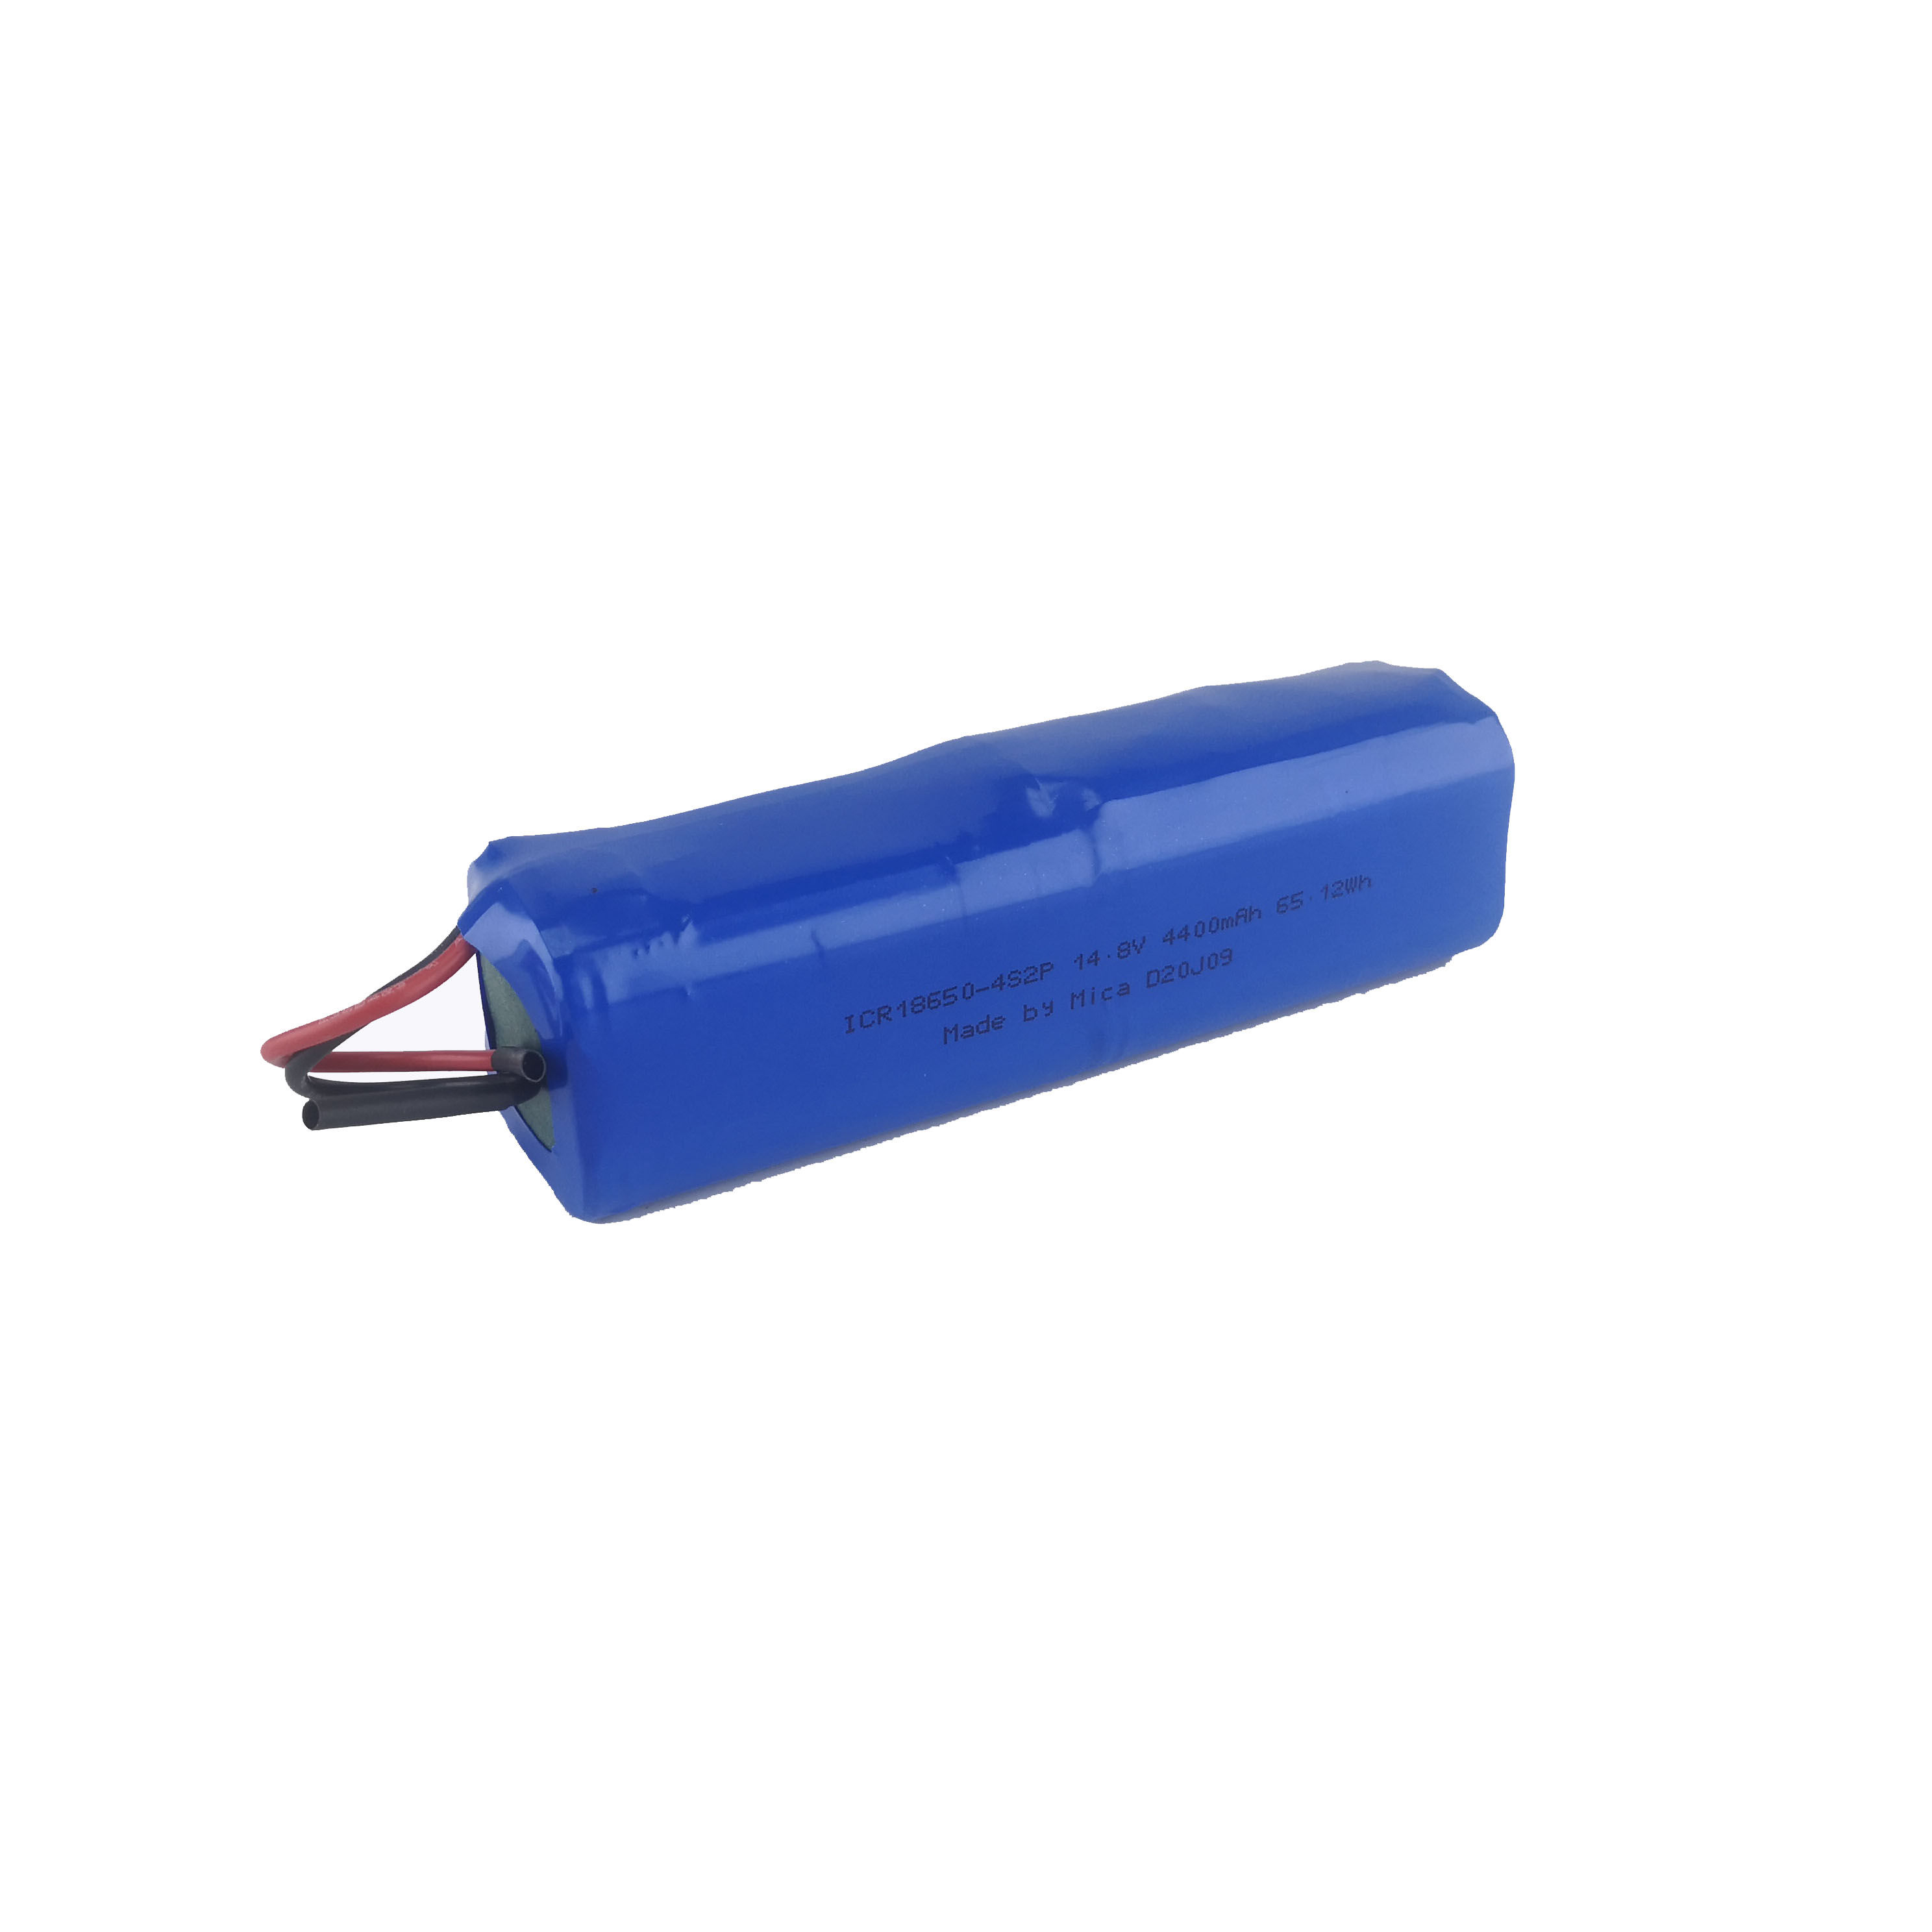 OEM/ODM Available High Rate Mica Icr18650 Lithium Io Battery 14.8V 4400mAh Li-ion Battery Pack for Digital Device